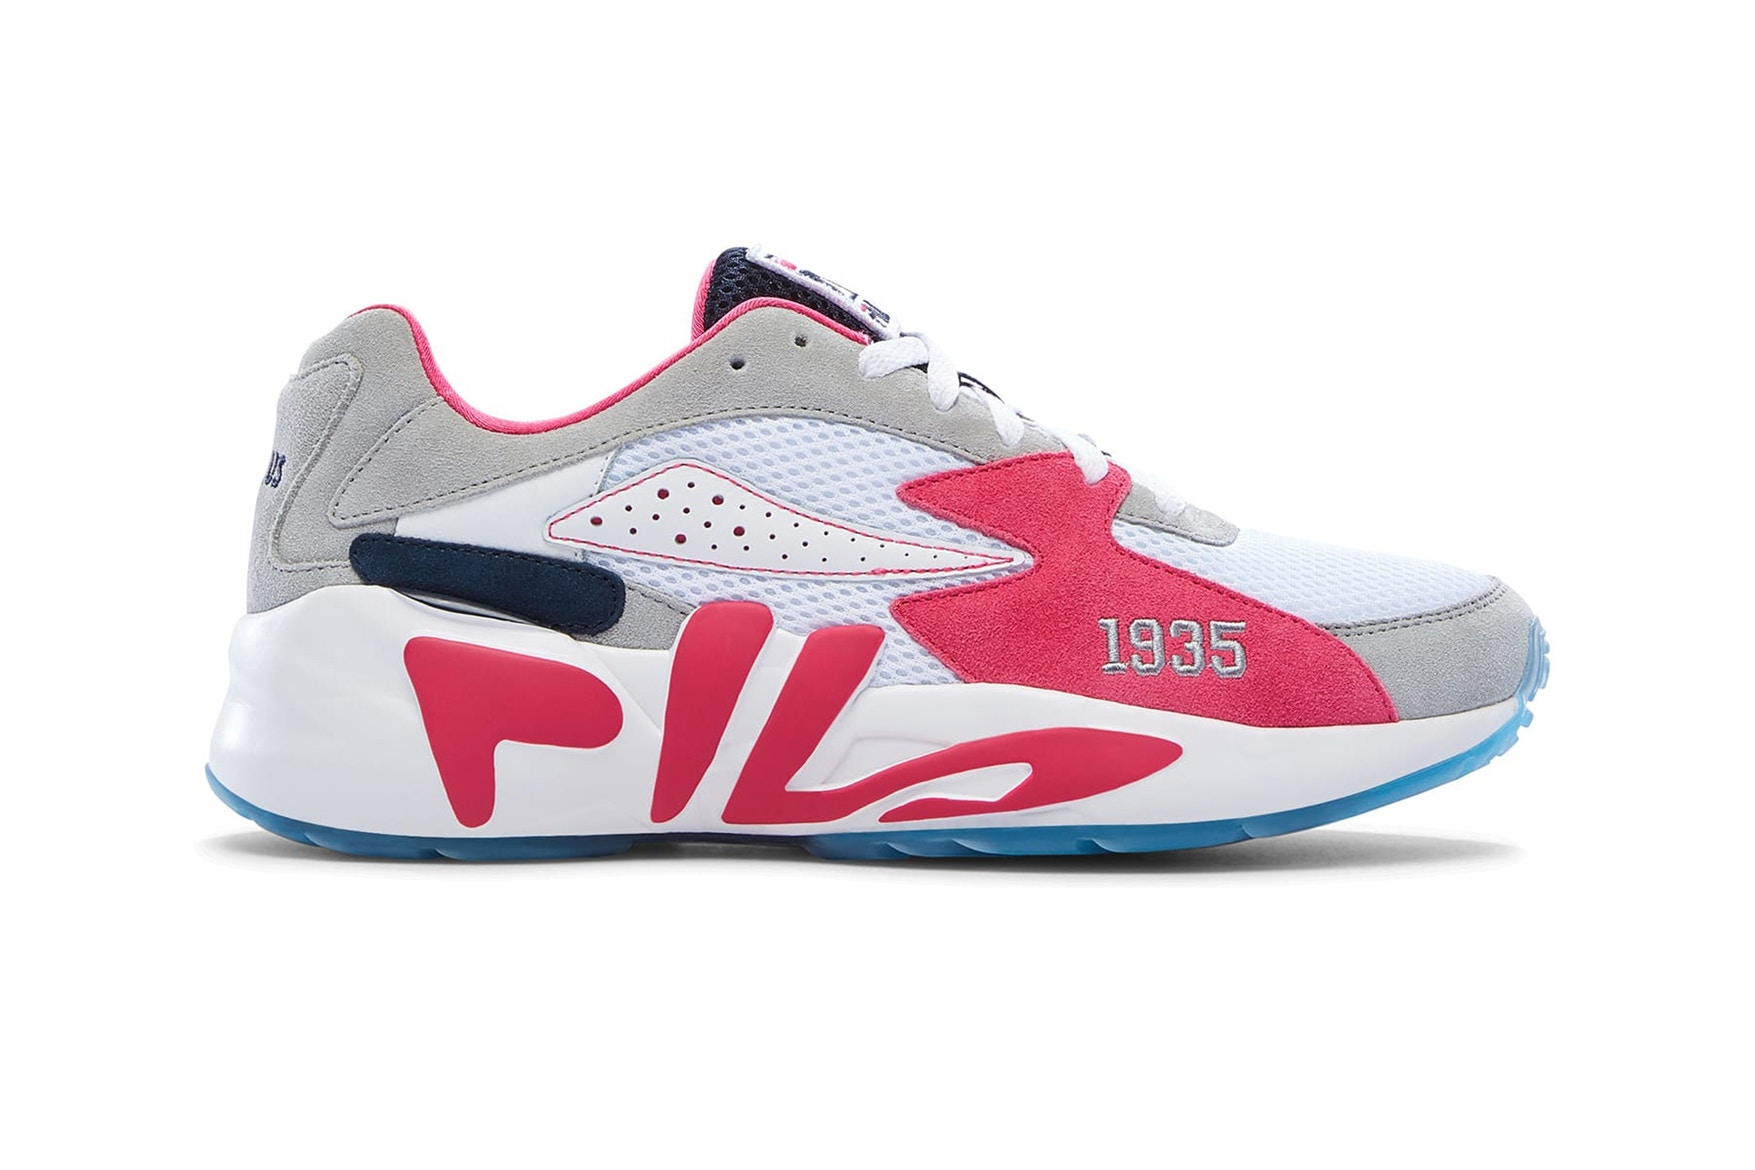 fila-revives-the-classic-mindblower-with-over-40-limited-edition-collaborations-23